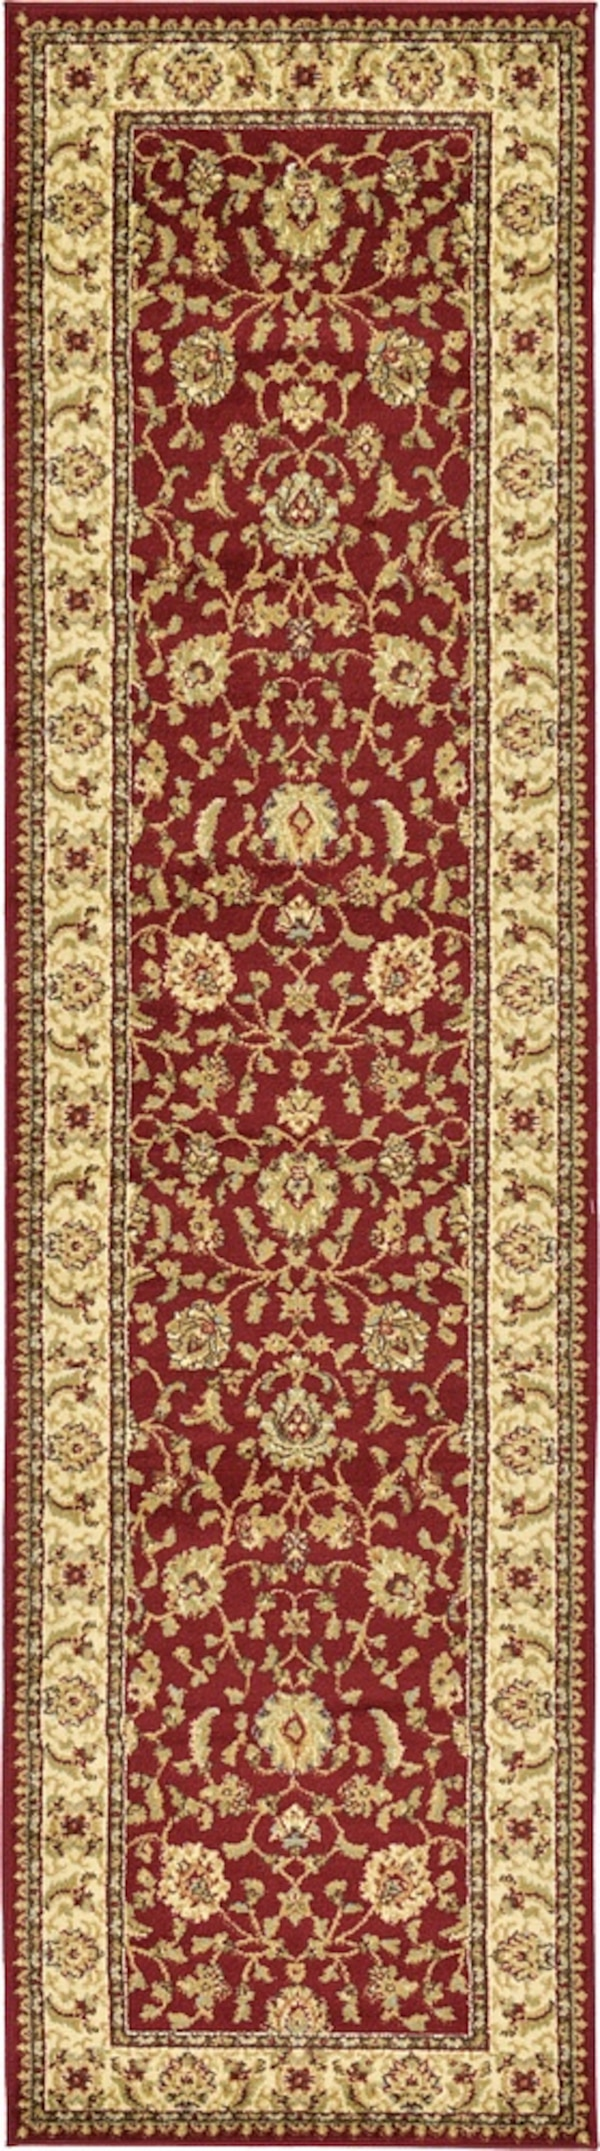 Brand new carpet runner size 3x10 nice red rug runners  8744f884-ccdf-4972-b135-ede17b4bc70a